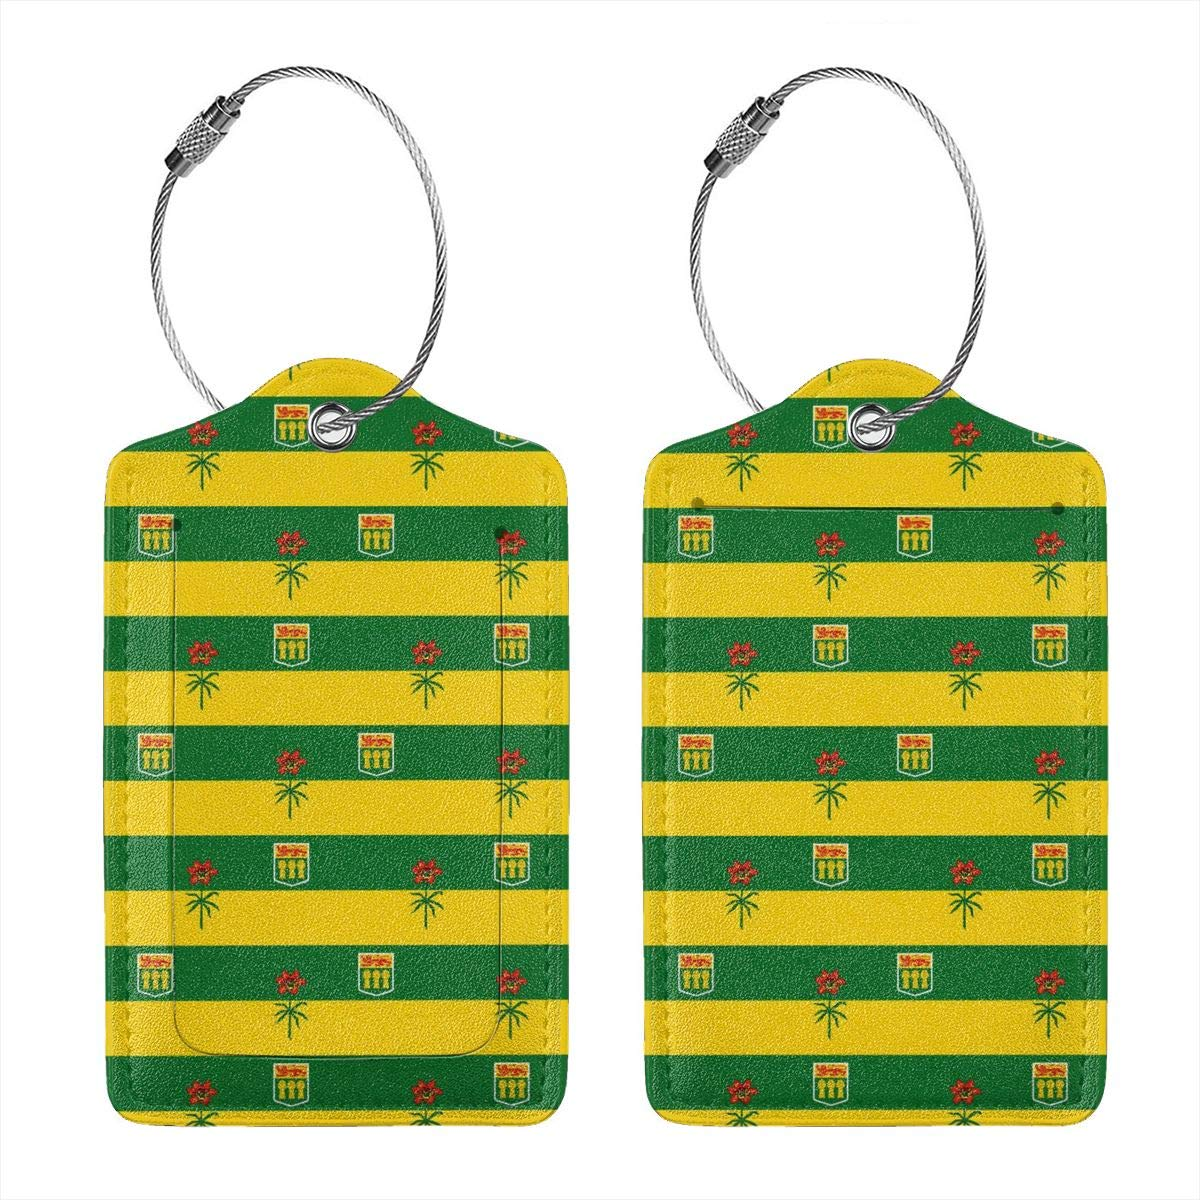 Saskatchewan Canada Flag Leather Luggage Tags Personalized Flexible Custom Travel Tags With Privacy Flap